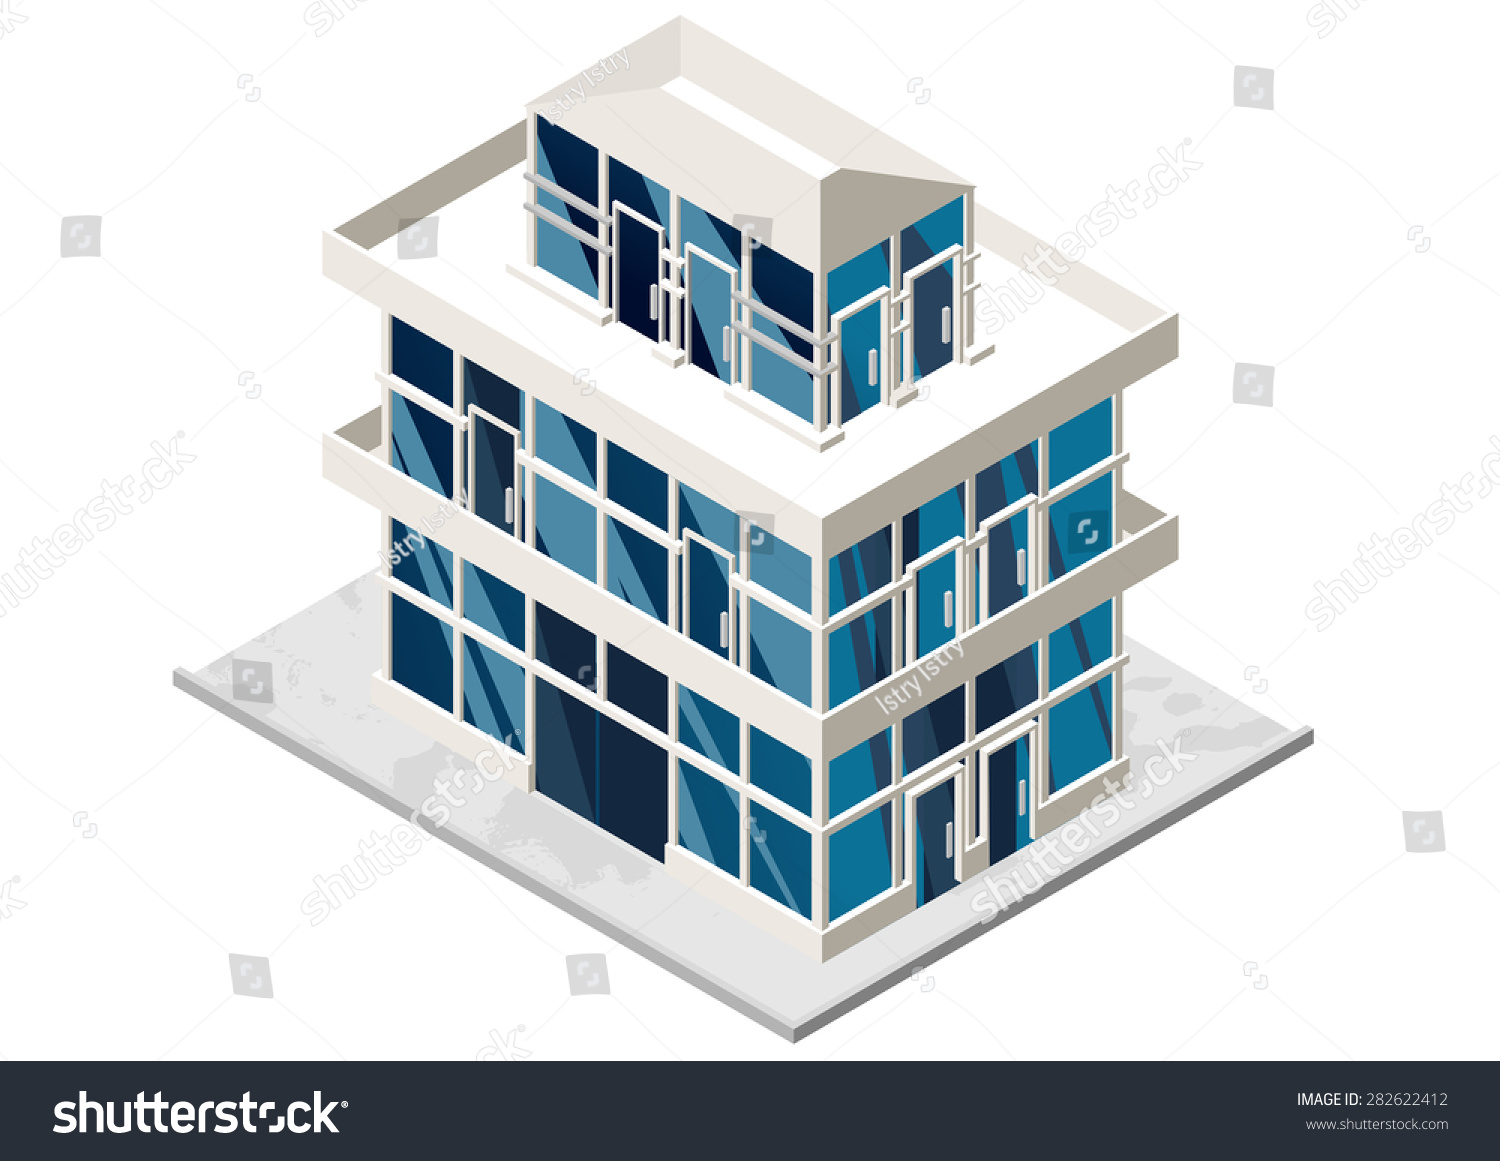 Vector illustration 3d building isometric view stock for Building a dog kennel business